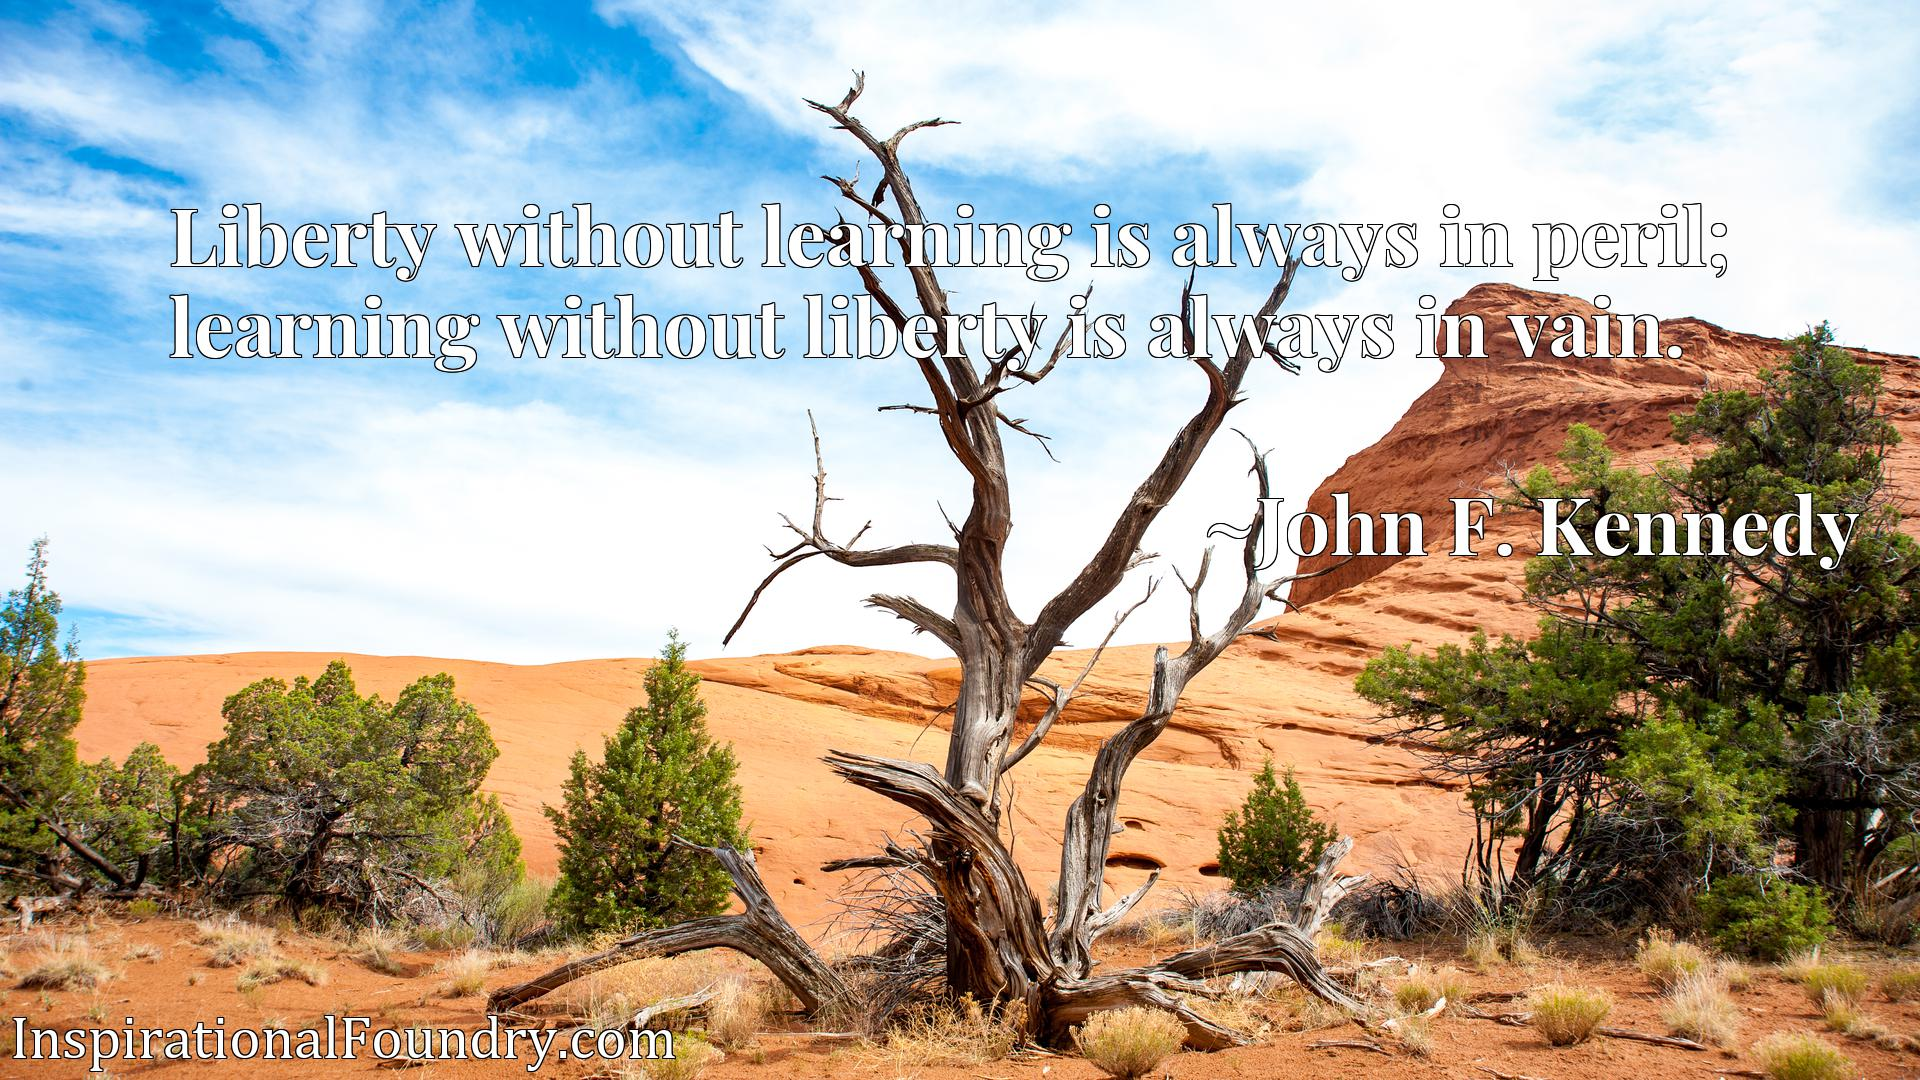 Liberty without learning is always in peril; learning without liberty is always in vain.